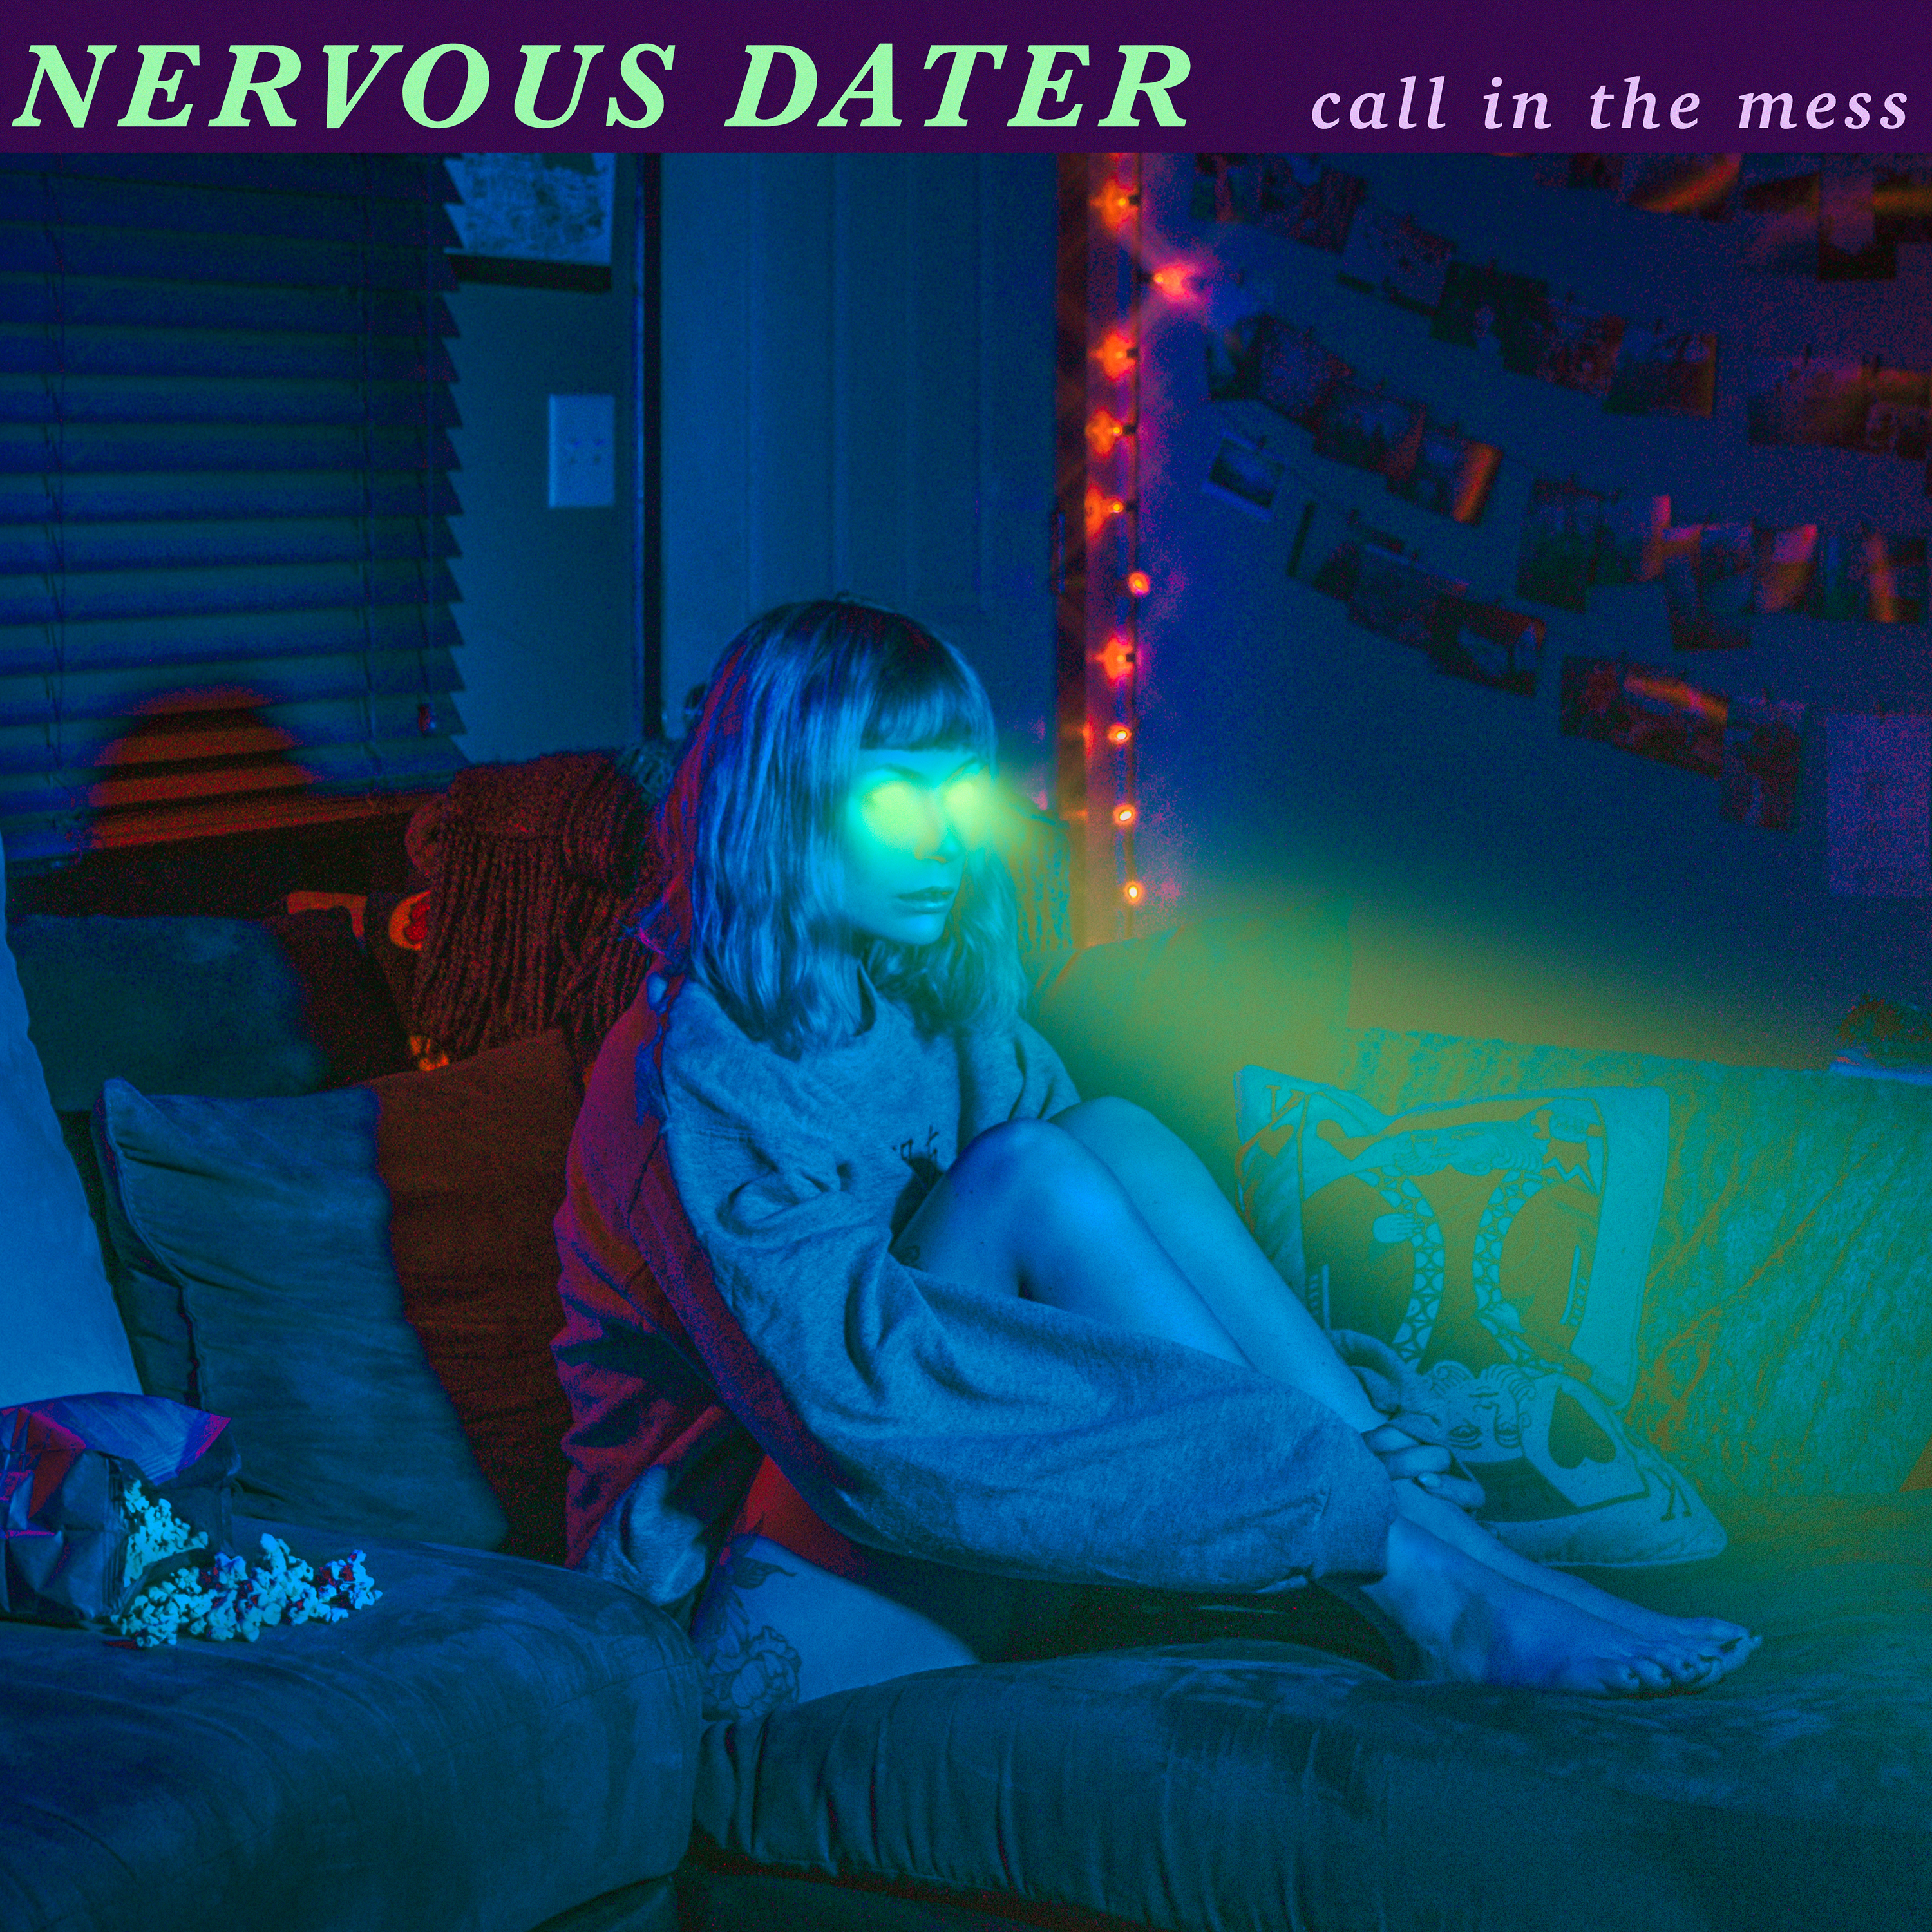 Nervous Dater - Call In The Mess